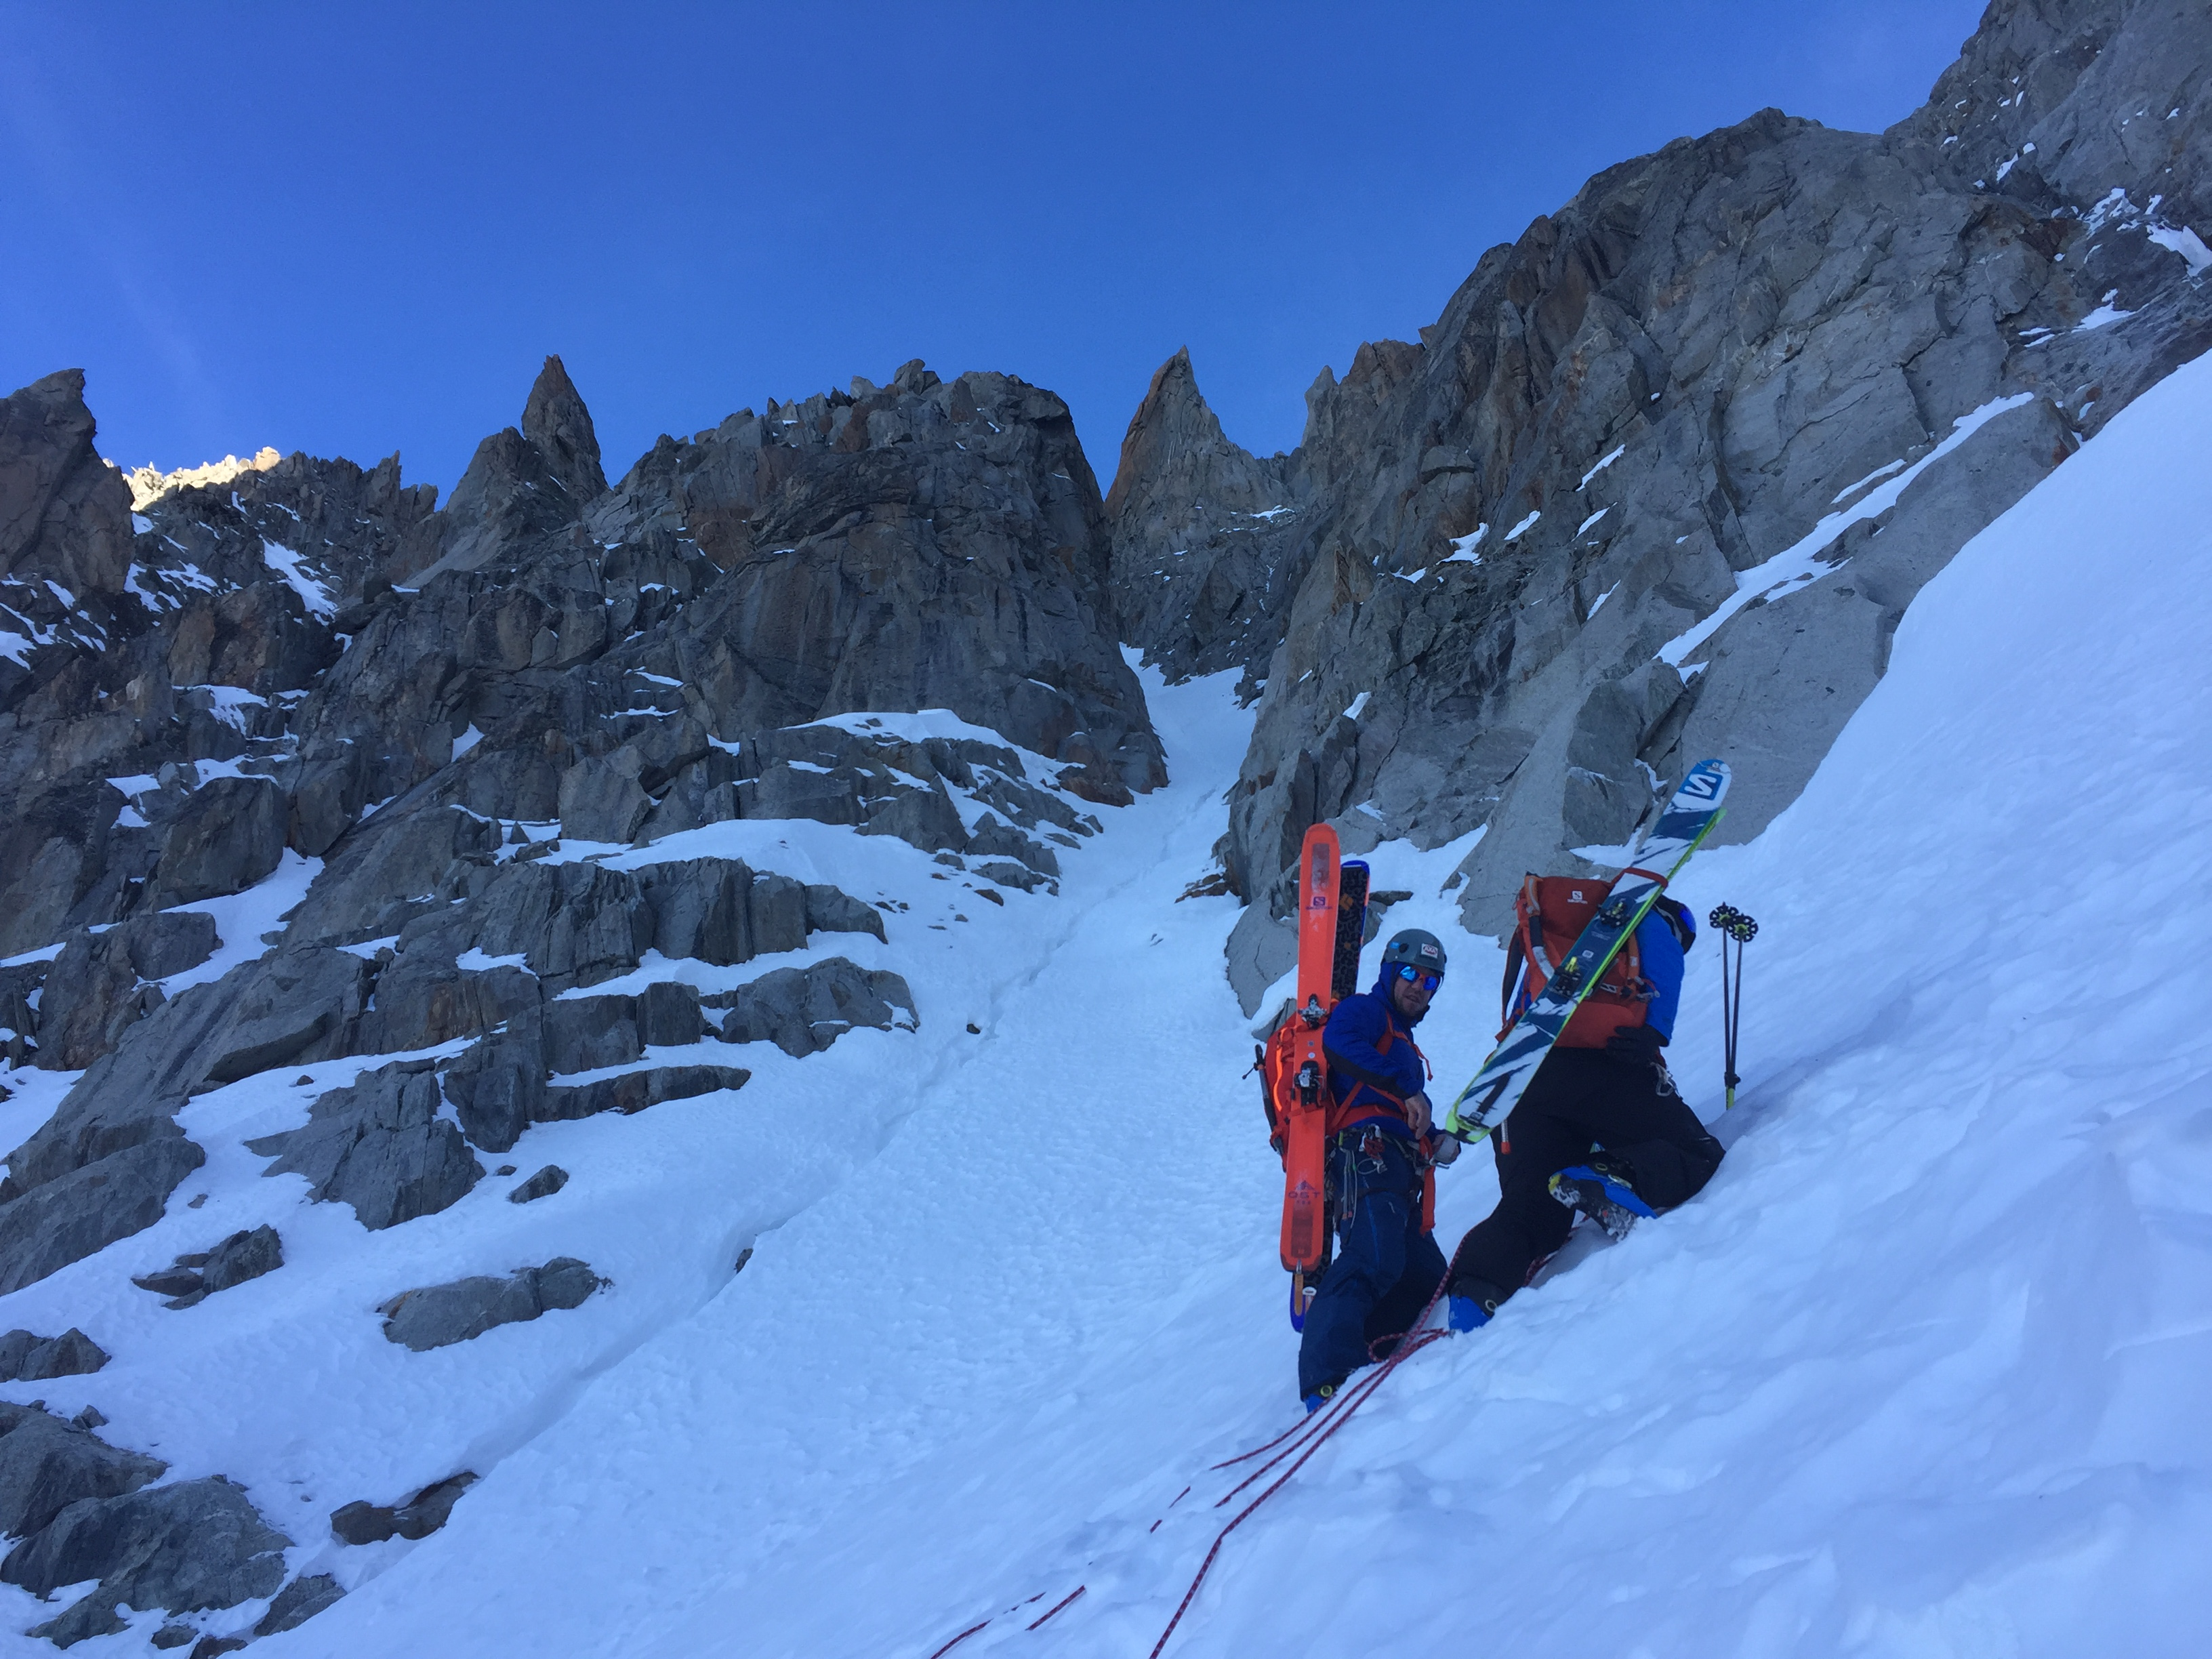 Jesper Petersson and Joel Evans switching to crampons underneath the Frigor Couloir. Photo: Pete Houghton